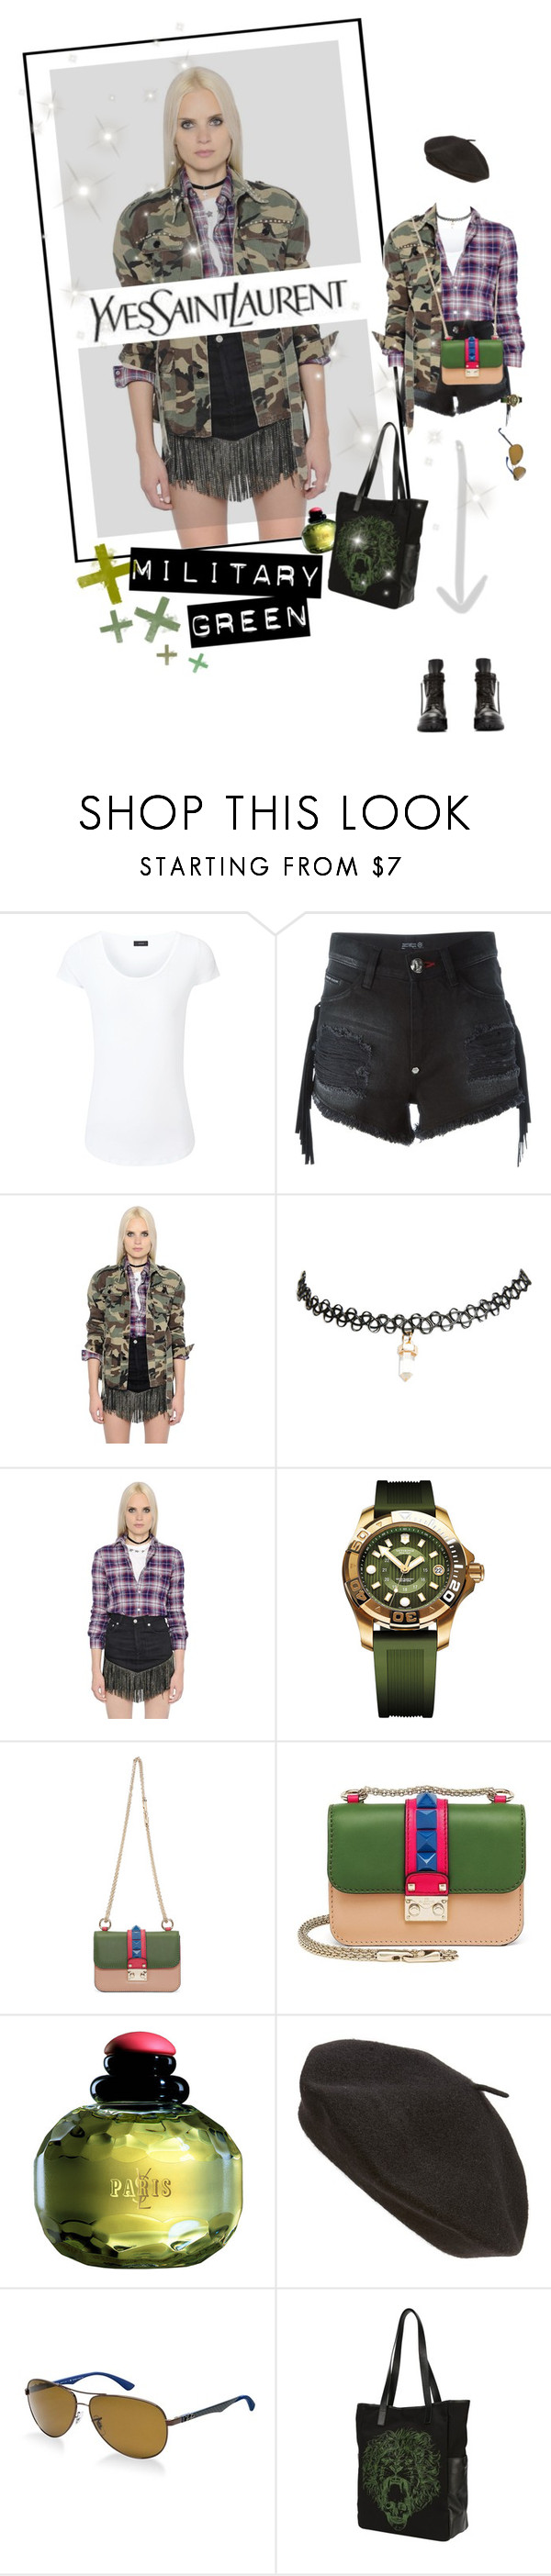 """C A M O U F L A G E"" by meddyanka ❤ liked on Polyvore featuring Joseph, Philipp Plein, Yves Saint Laurent, Wet Seal, Victorinox Swiss Army, Valentino, Parkhurst, Ray-Ban, Alexander McQueen and Rick Owens"